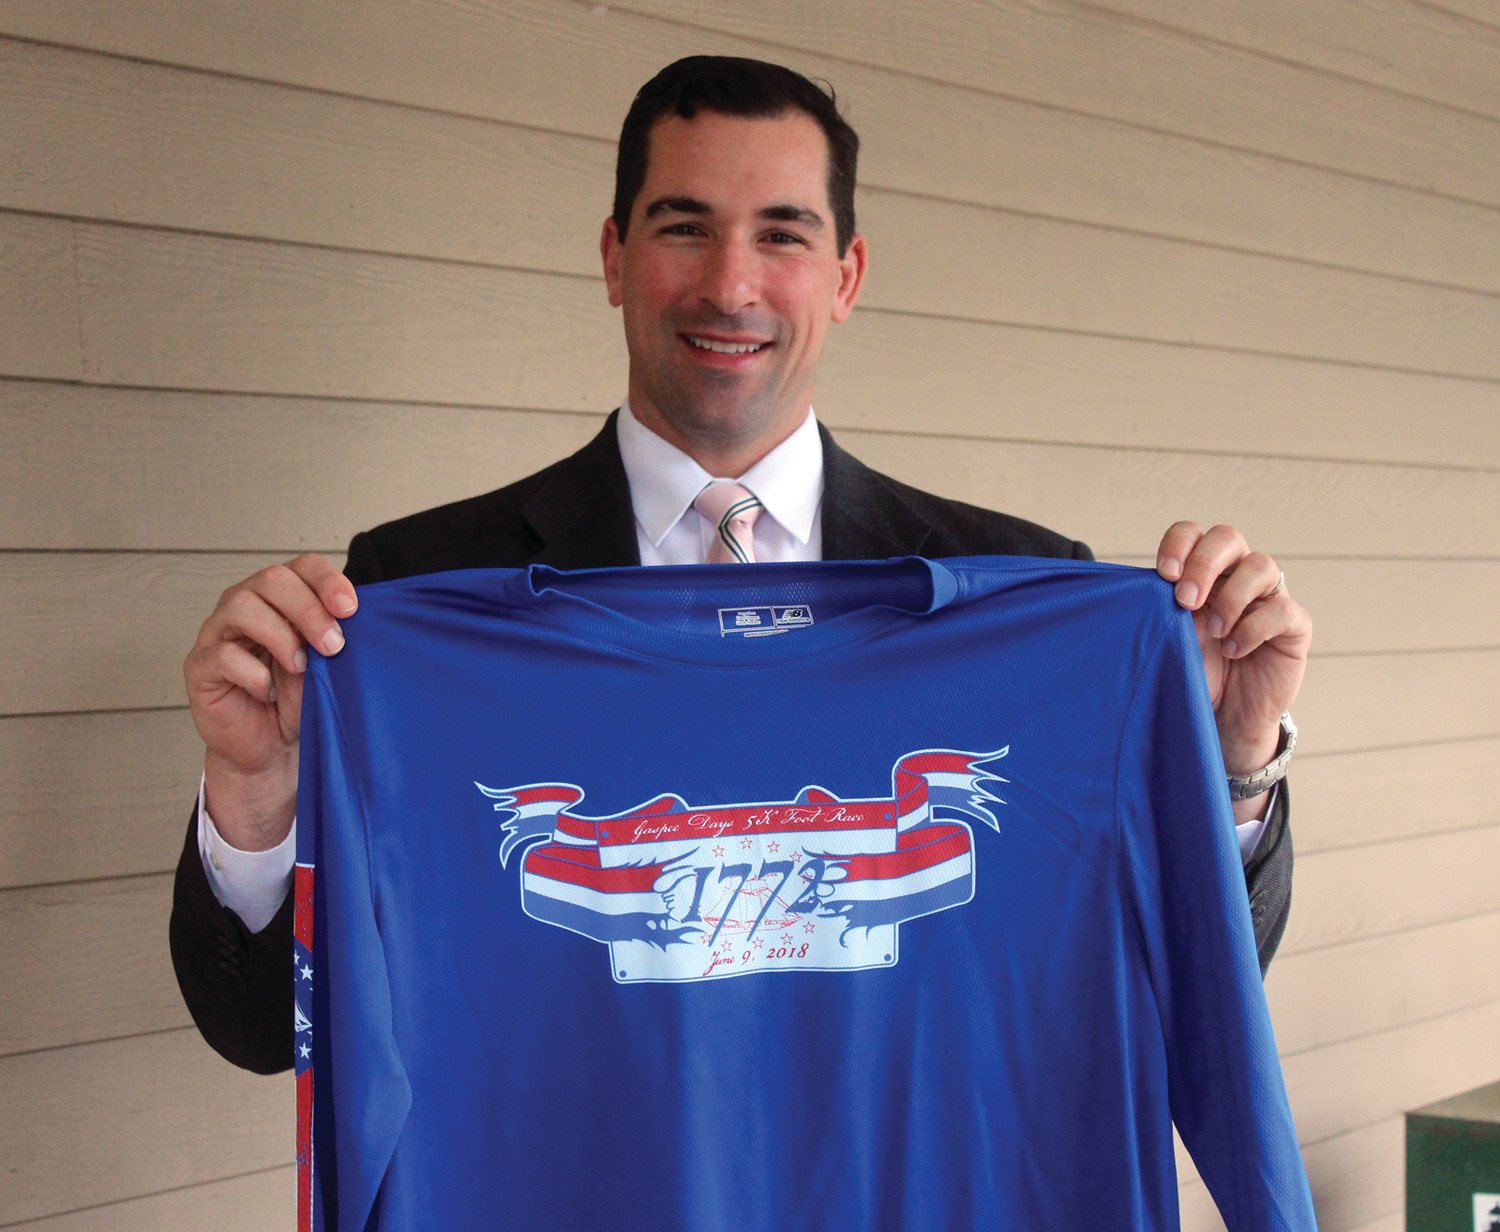 ON YOUR MARK: Chairman Matthew Tsimikas shows off a t-shirt for this year's race.